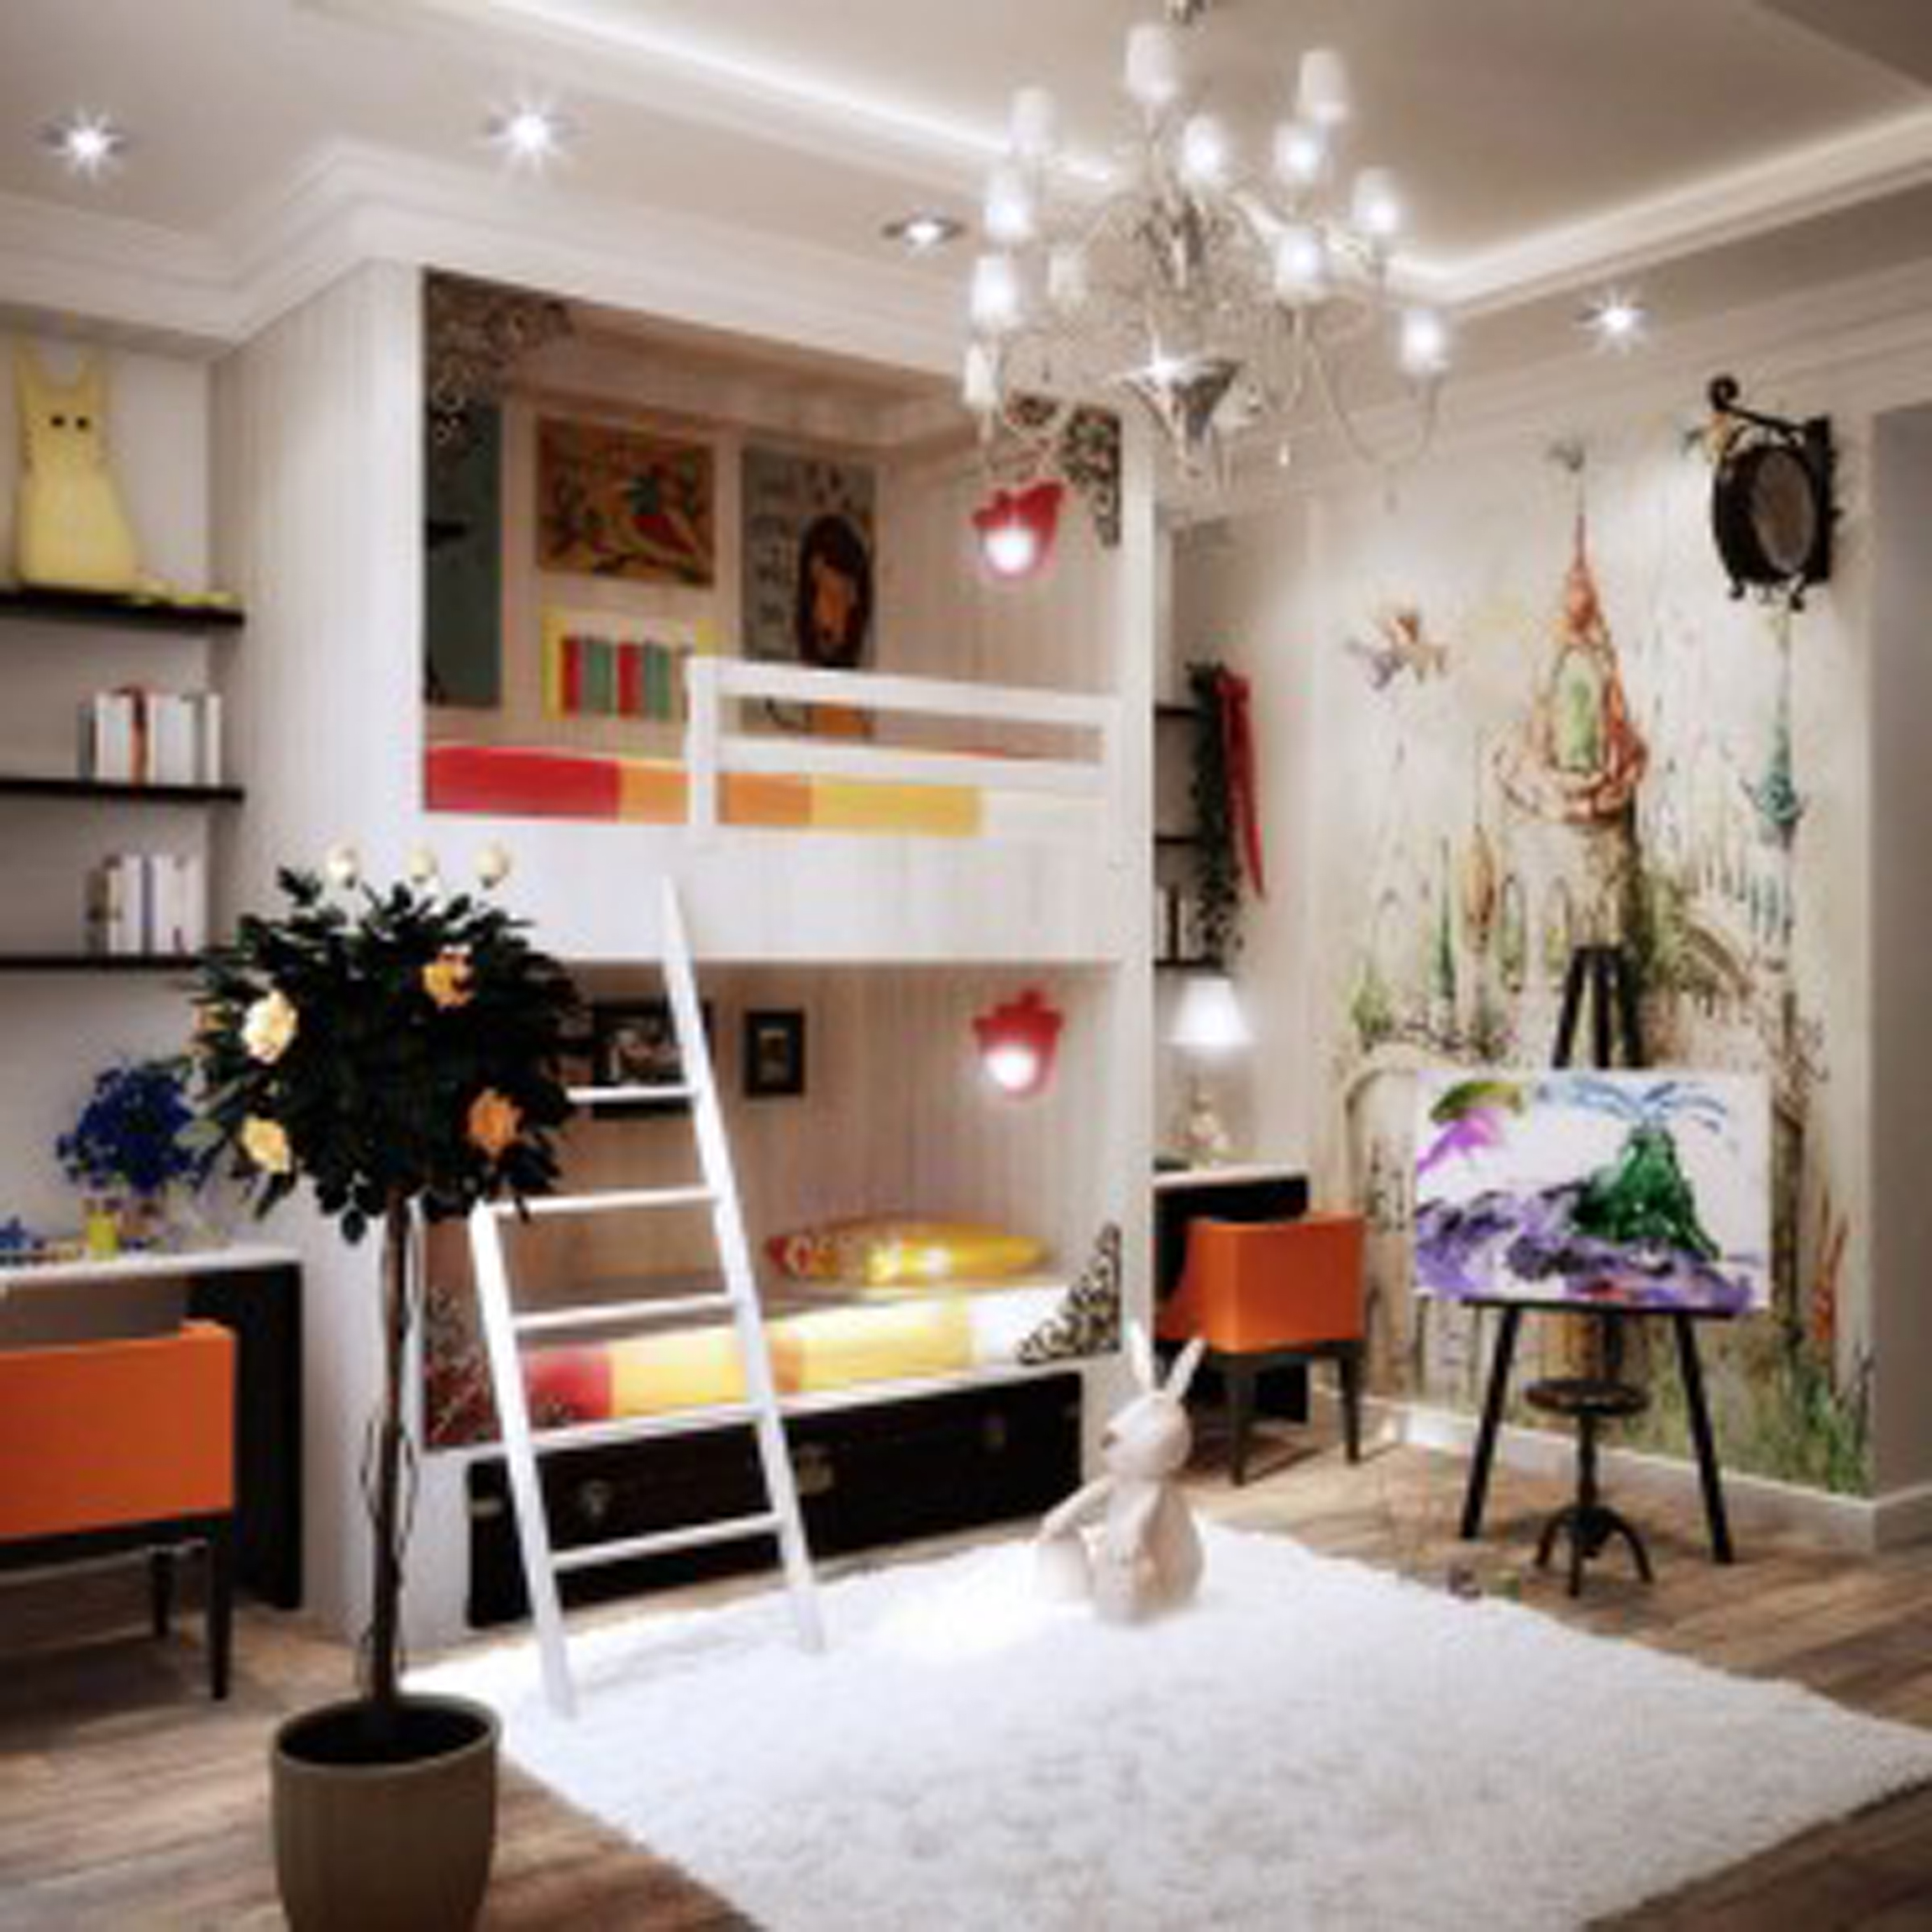 Kids Room Color With White Wall Paint And Adorable Chandelier And White Square Floor Mat And White Bunk Bed Attractive Kids Room Design Ideas For Your Inspirations Best Colors (Image 23 of 28)